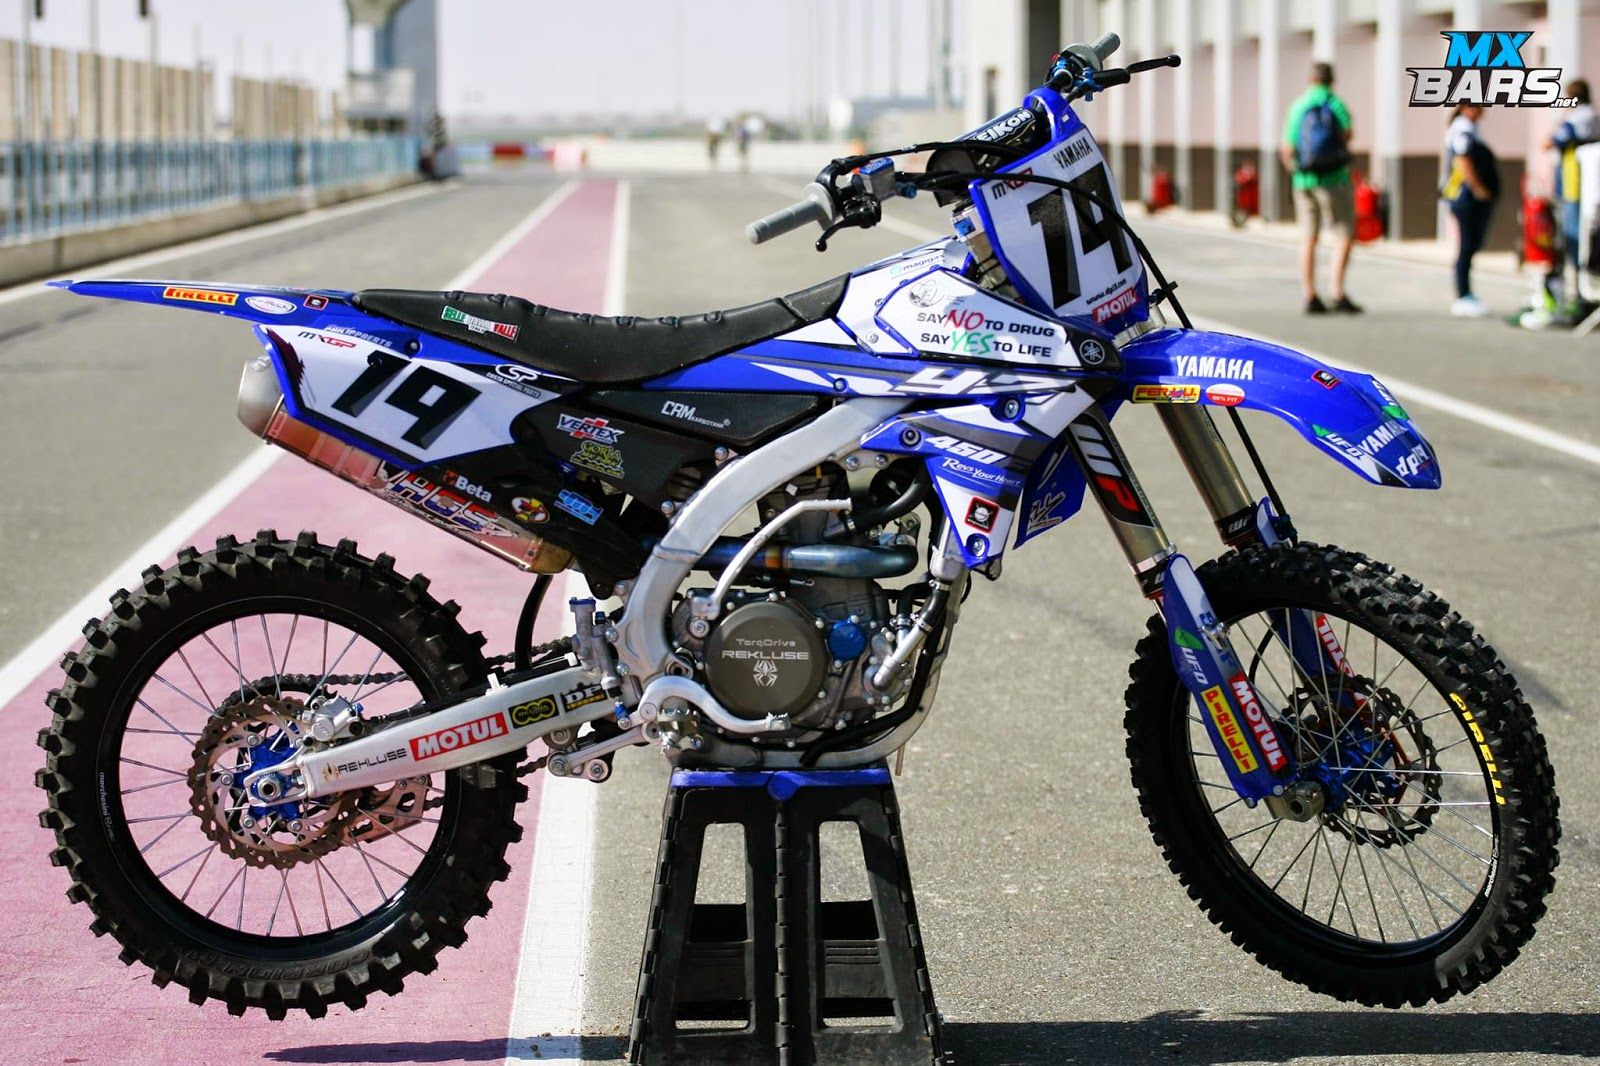 Yamaha Yz 450f Team Dp19 Racing Yamaha 2015 Yamaha Racing Yamaha Yamaha 2015